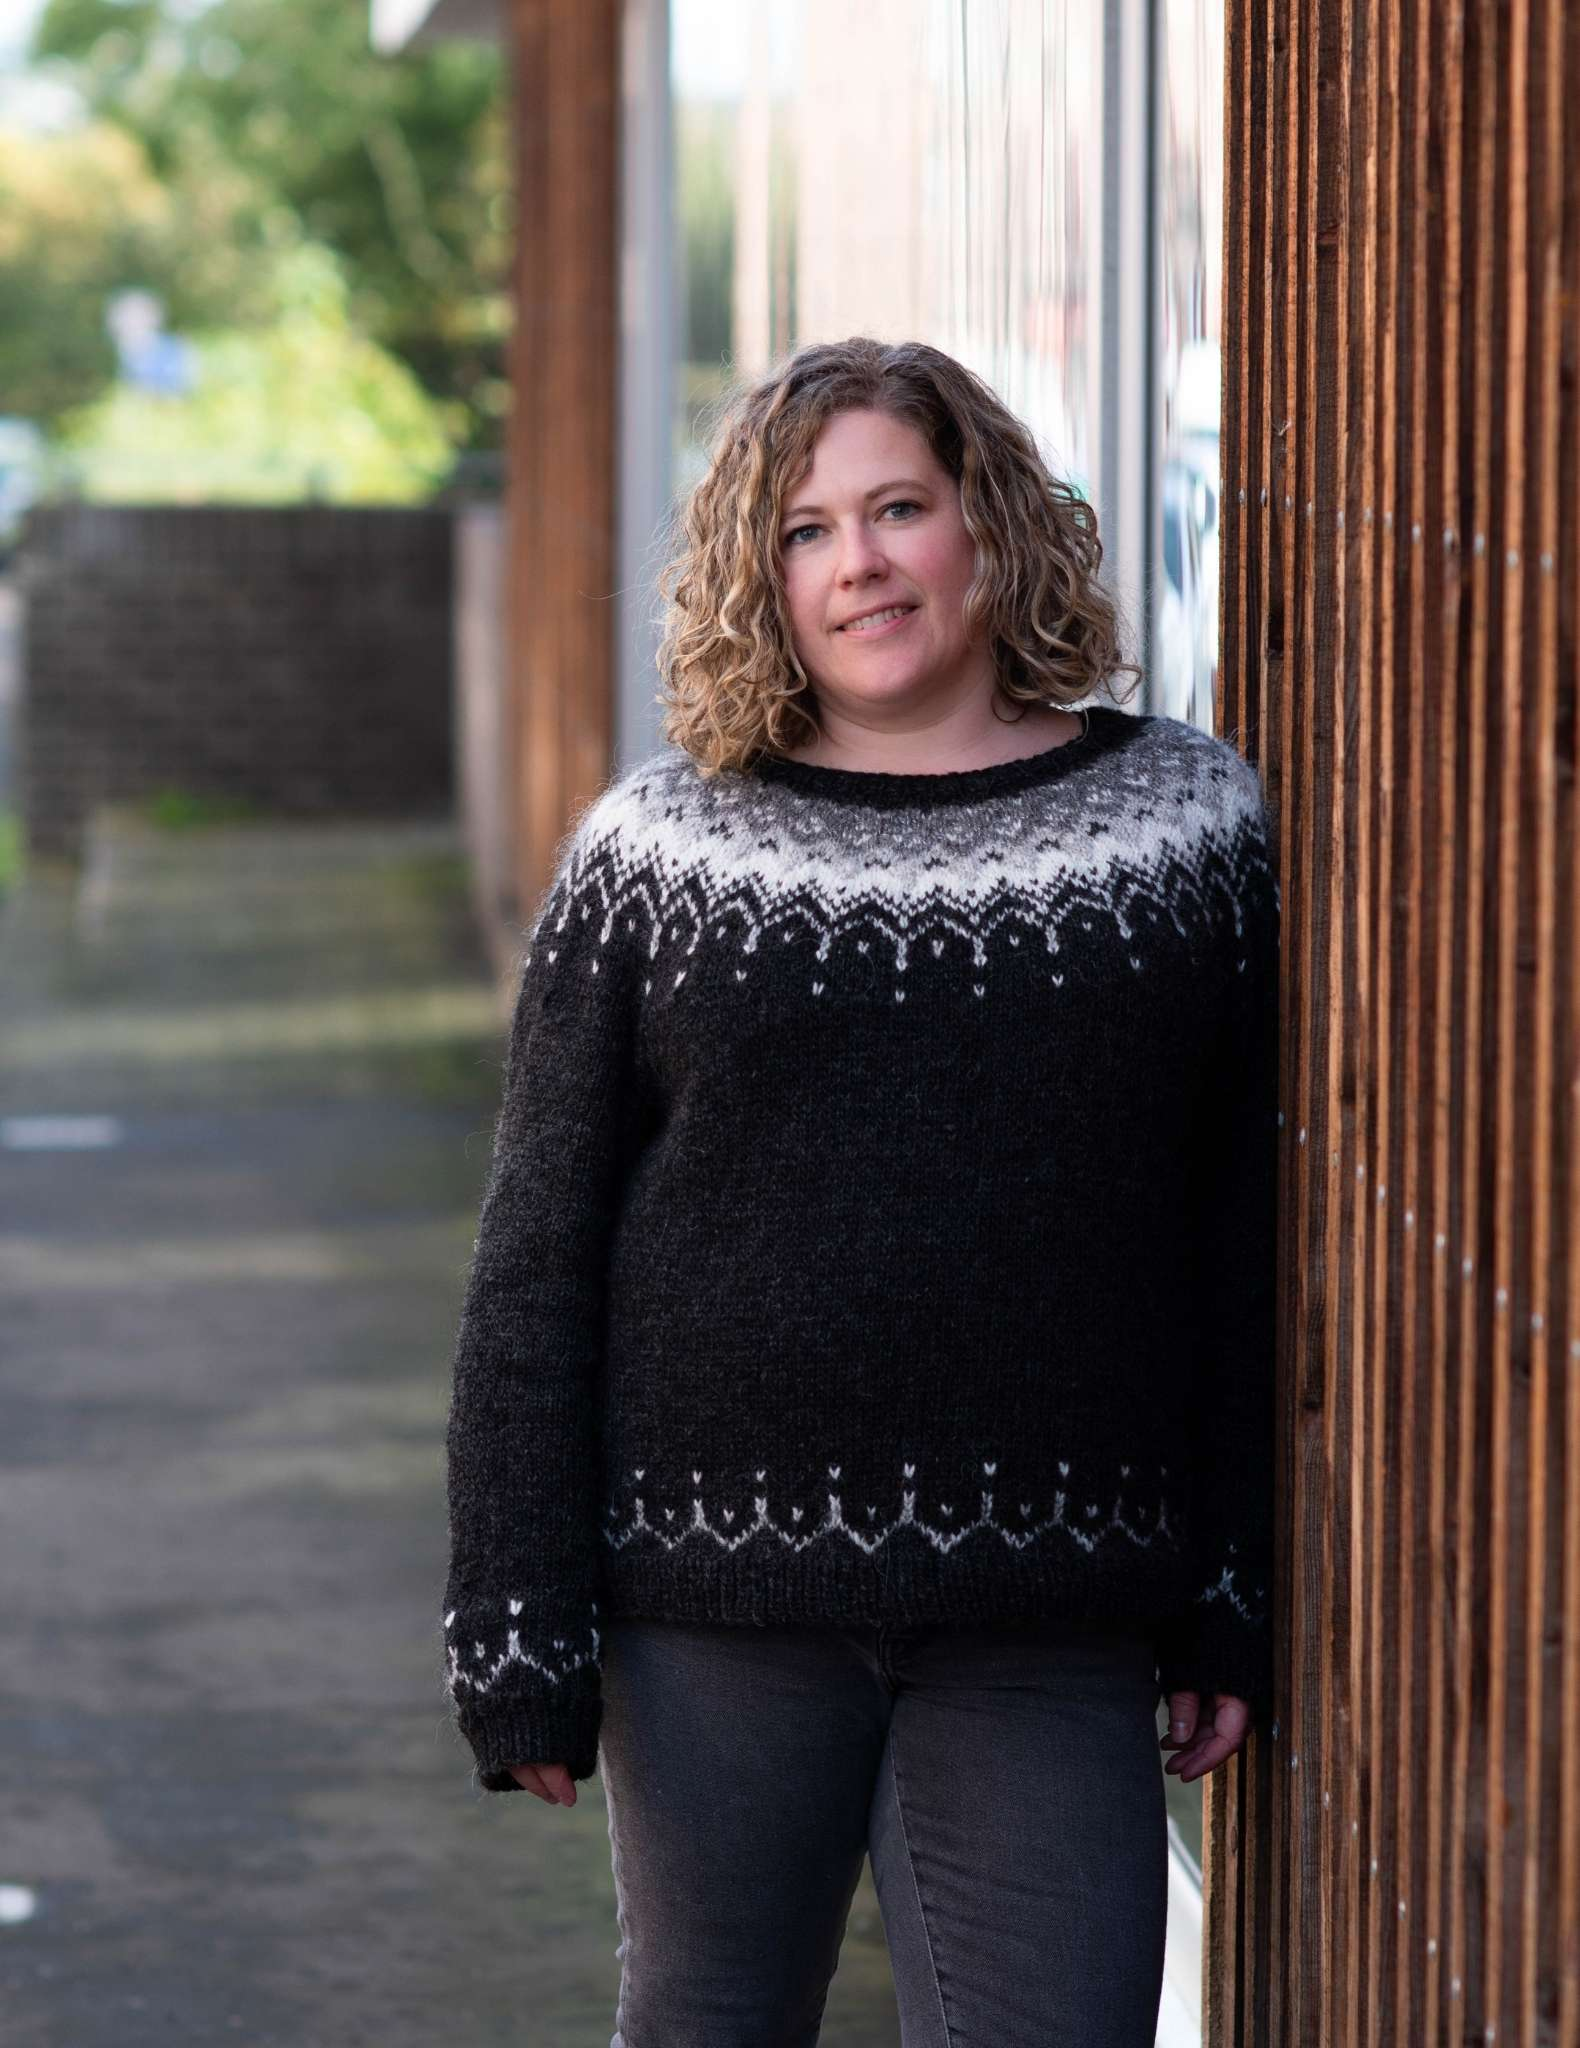 A white woman with curly hair wears a cosy black sweater with colourwork yoke in neutral colours, leaning against a wall